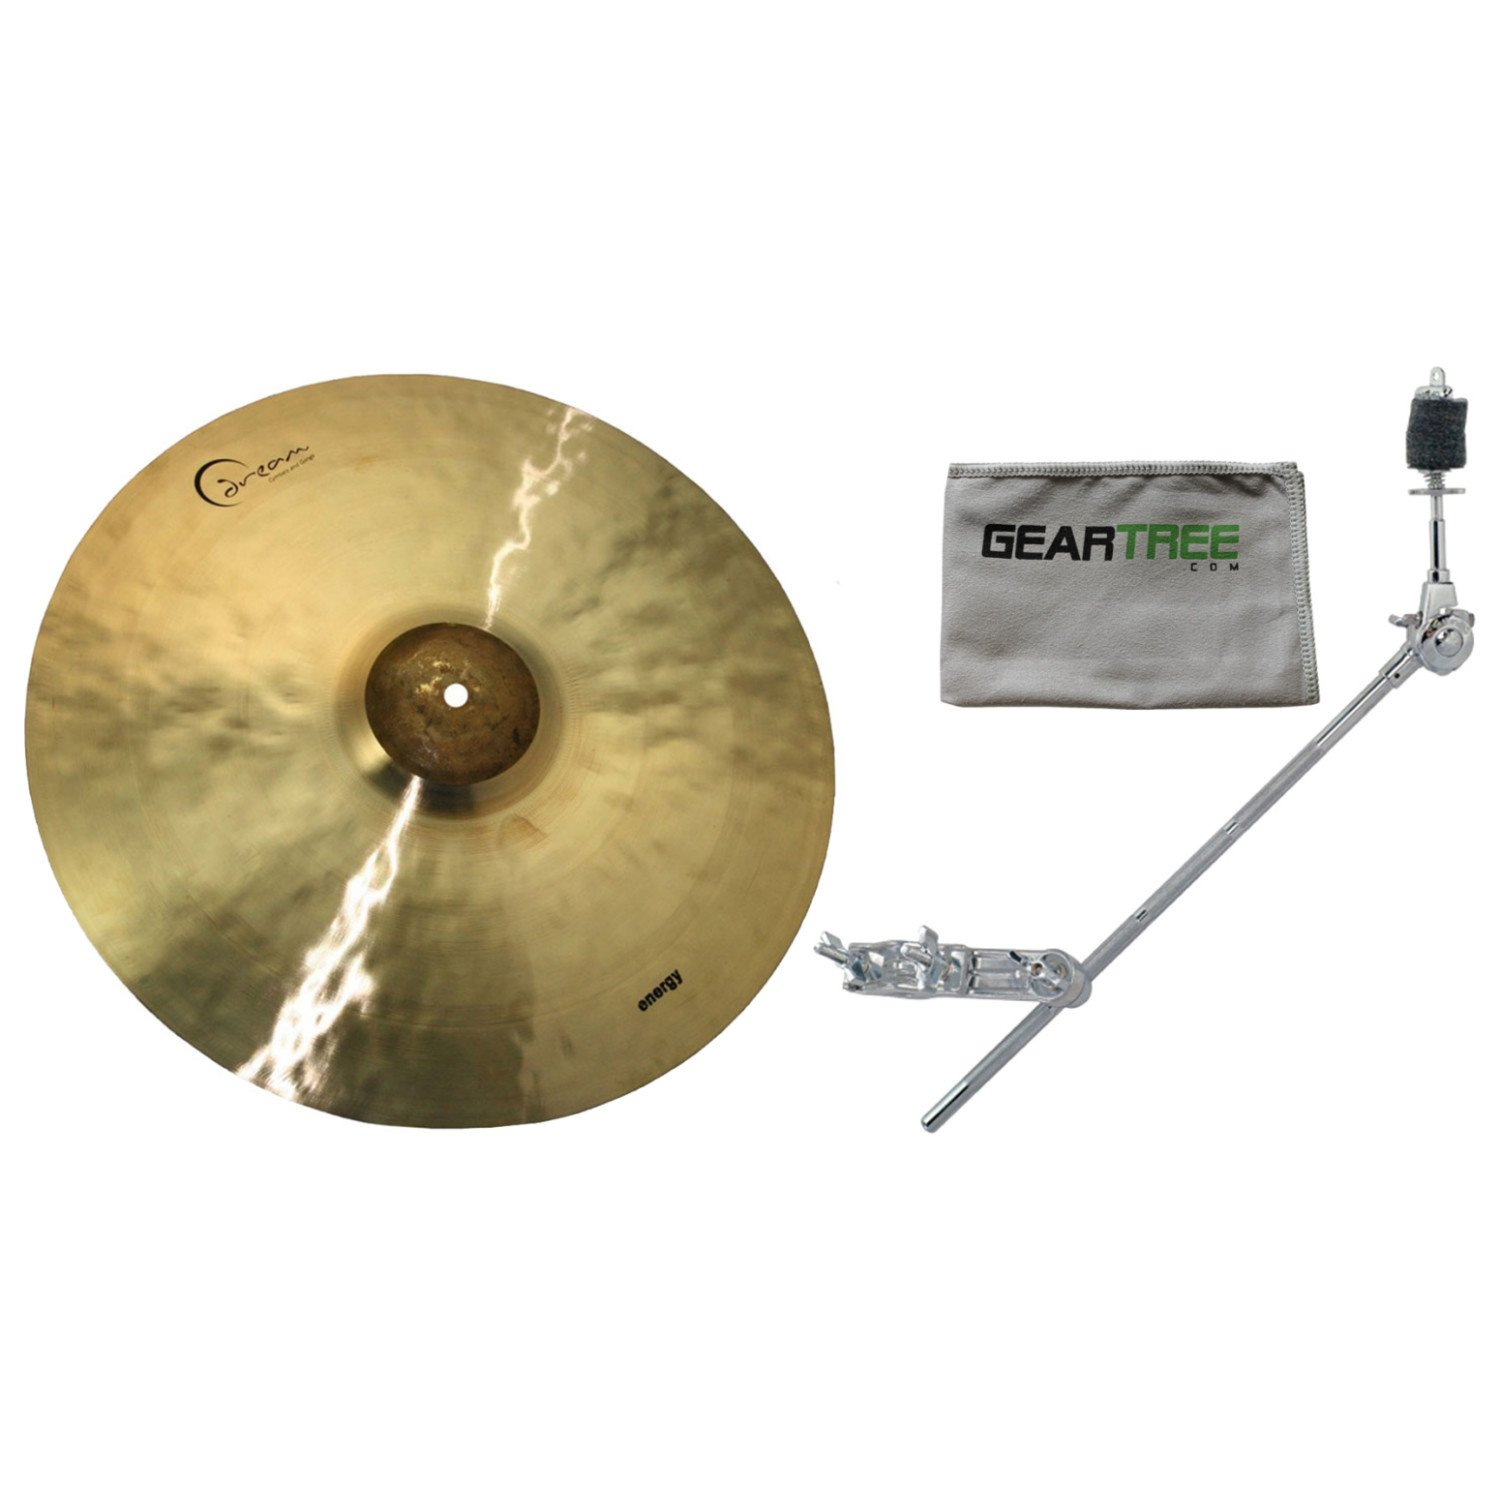 Dream ECRRI21 21 Inch Energy Crash Ride w/Geartree Cloth and Cymbal Arm